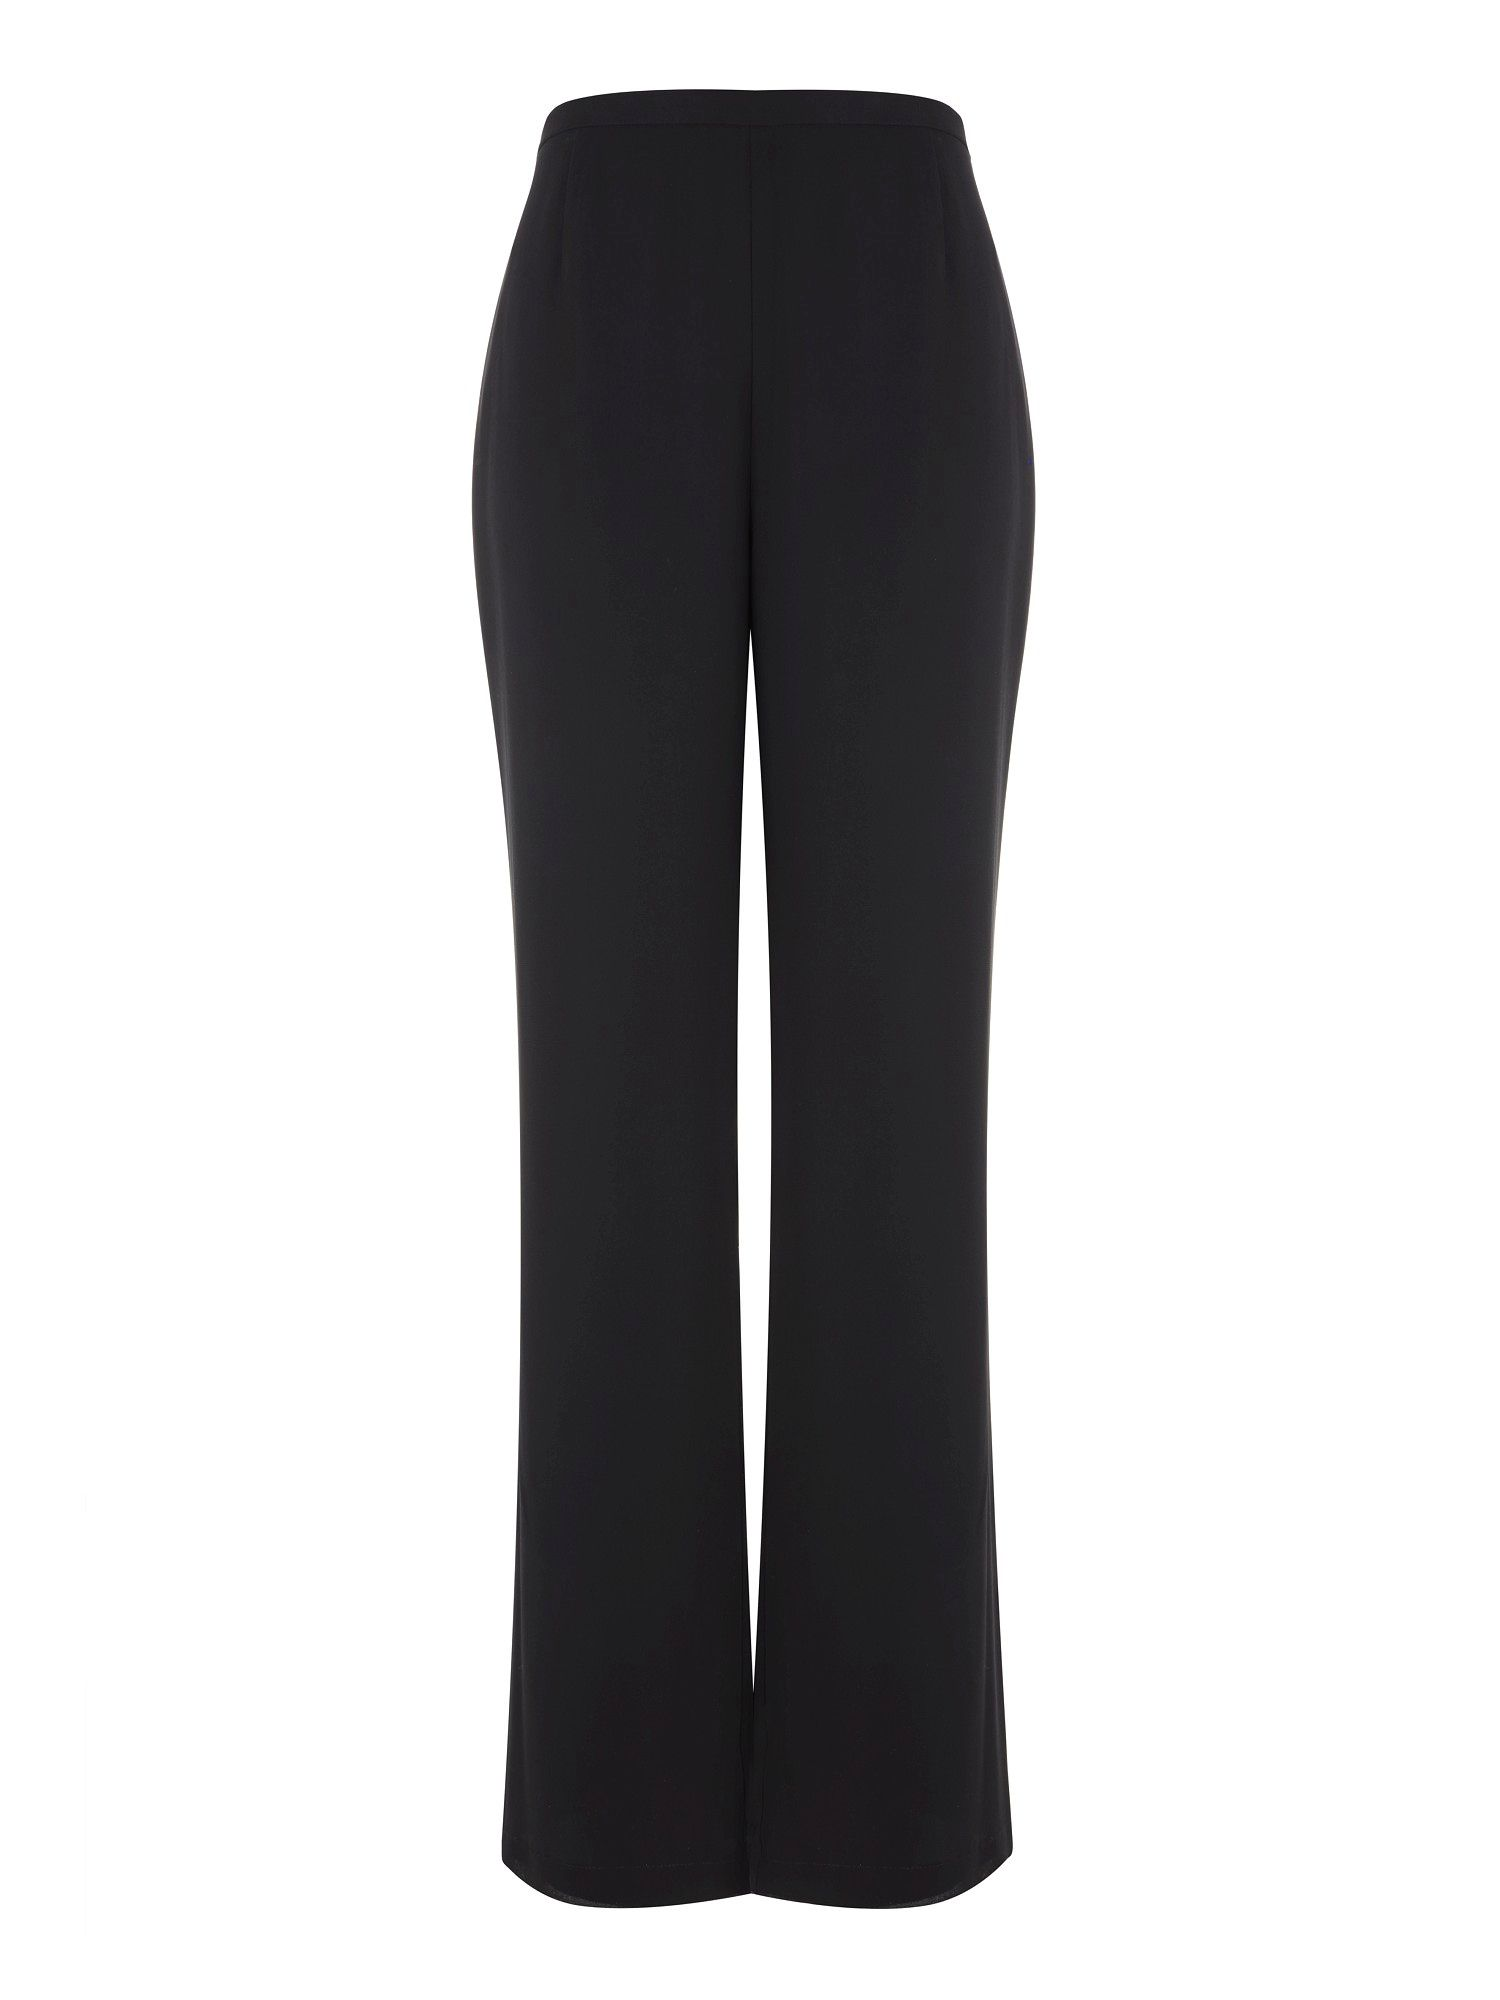 Black georgette wide leg trousers